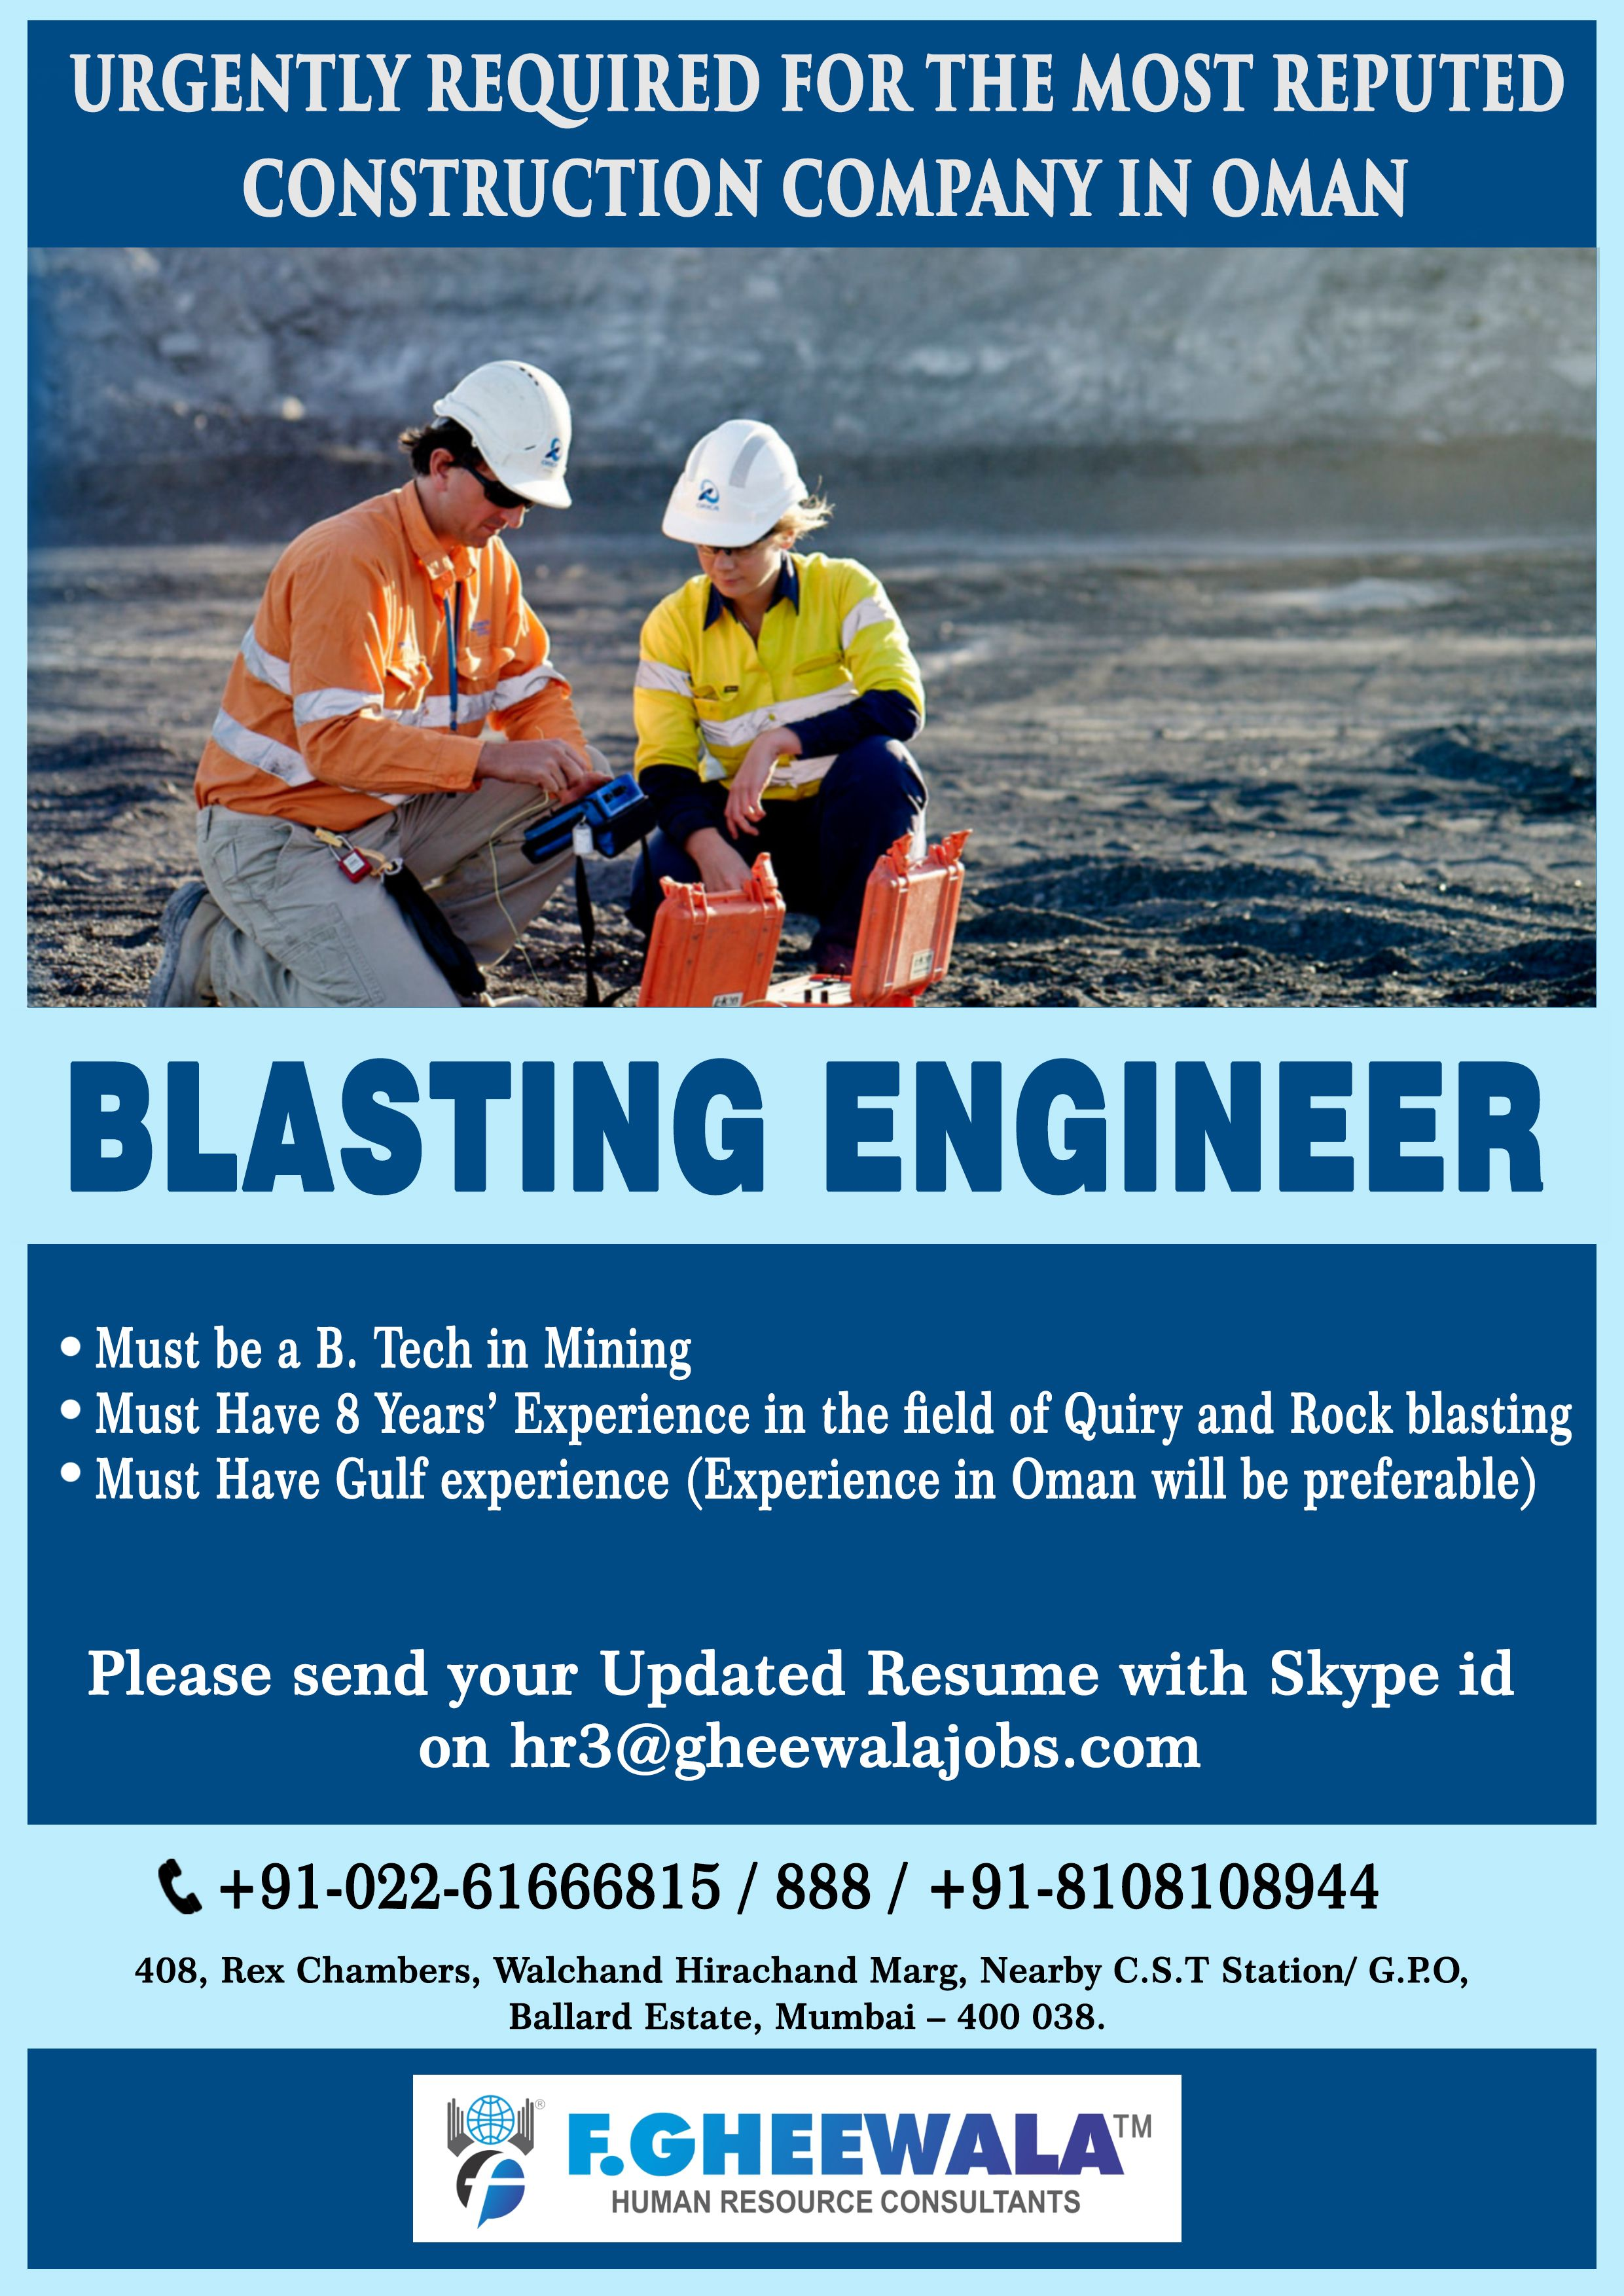 Urgently Required Blast Engineer For The Most Reputed Construction Company In Oman Please See Image Below Job Details Send Your Updated Cv